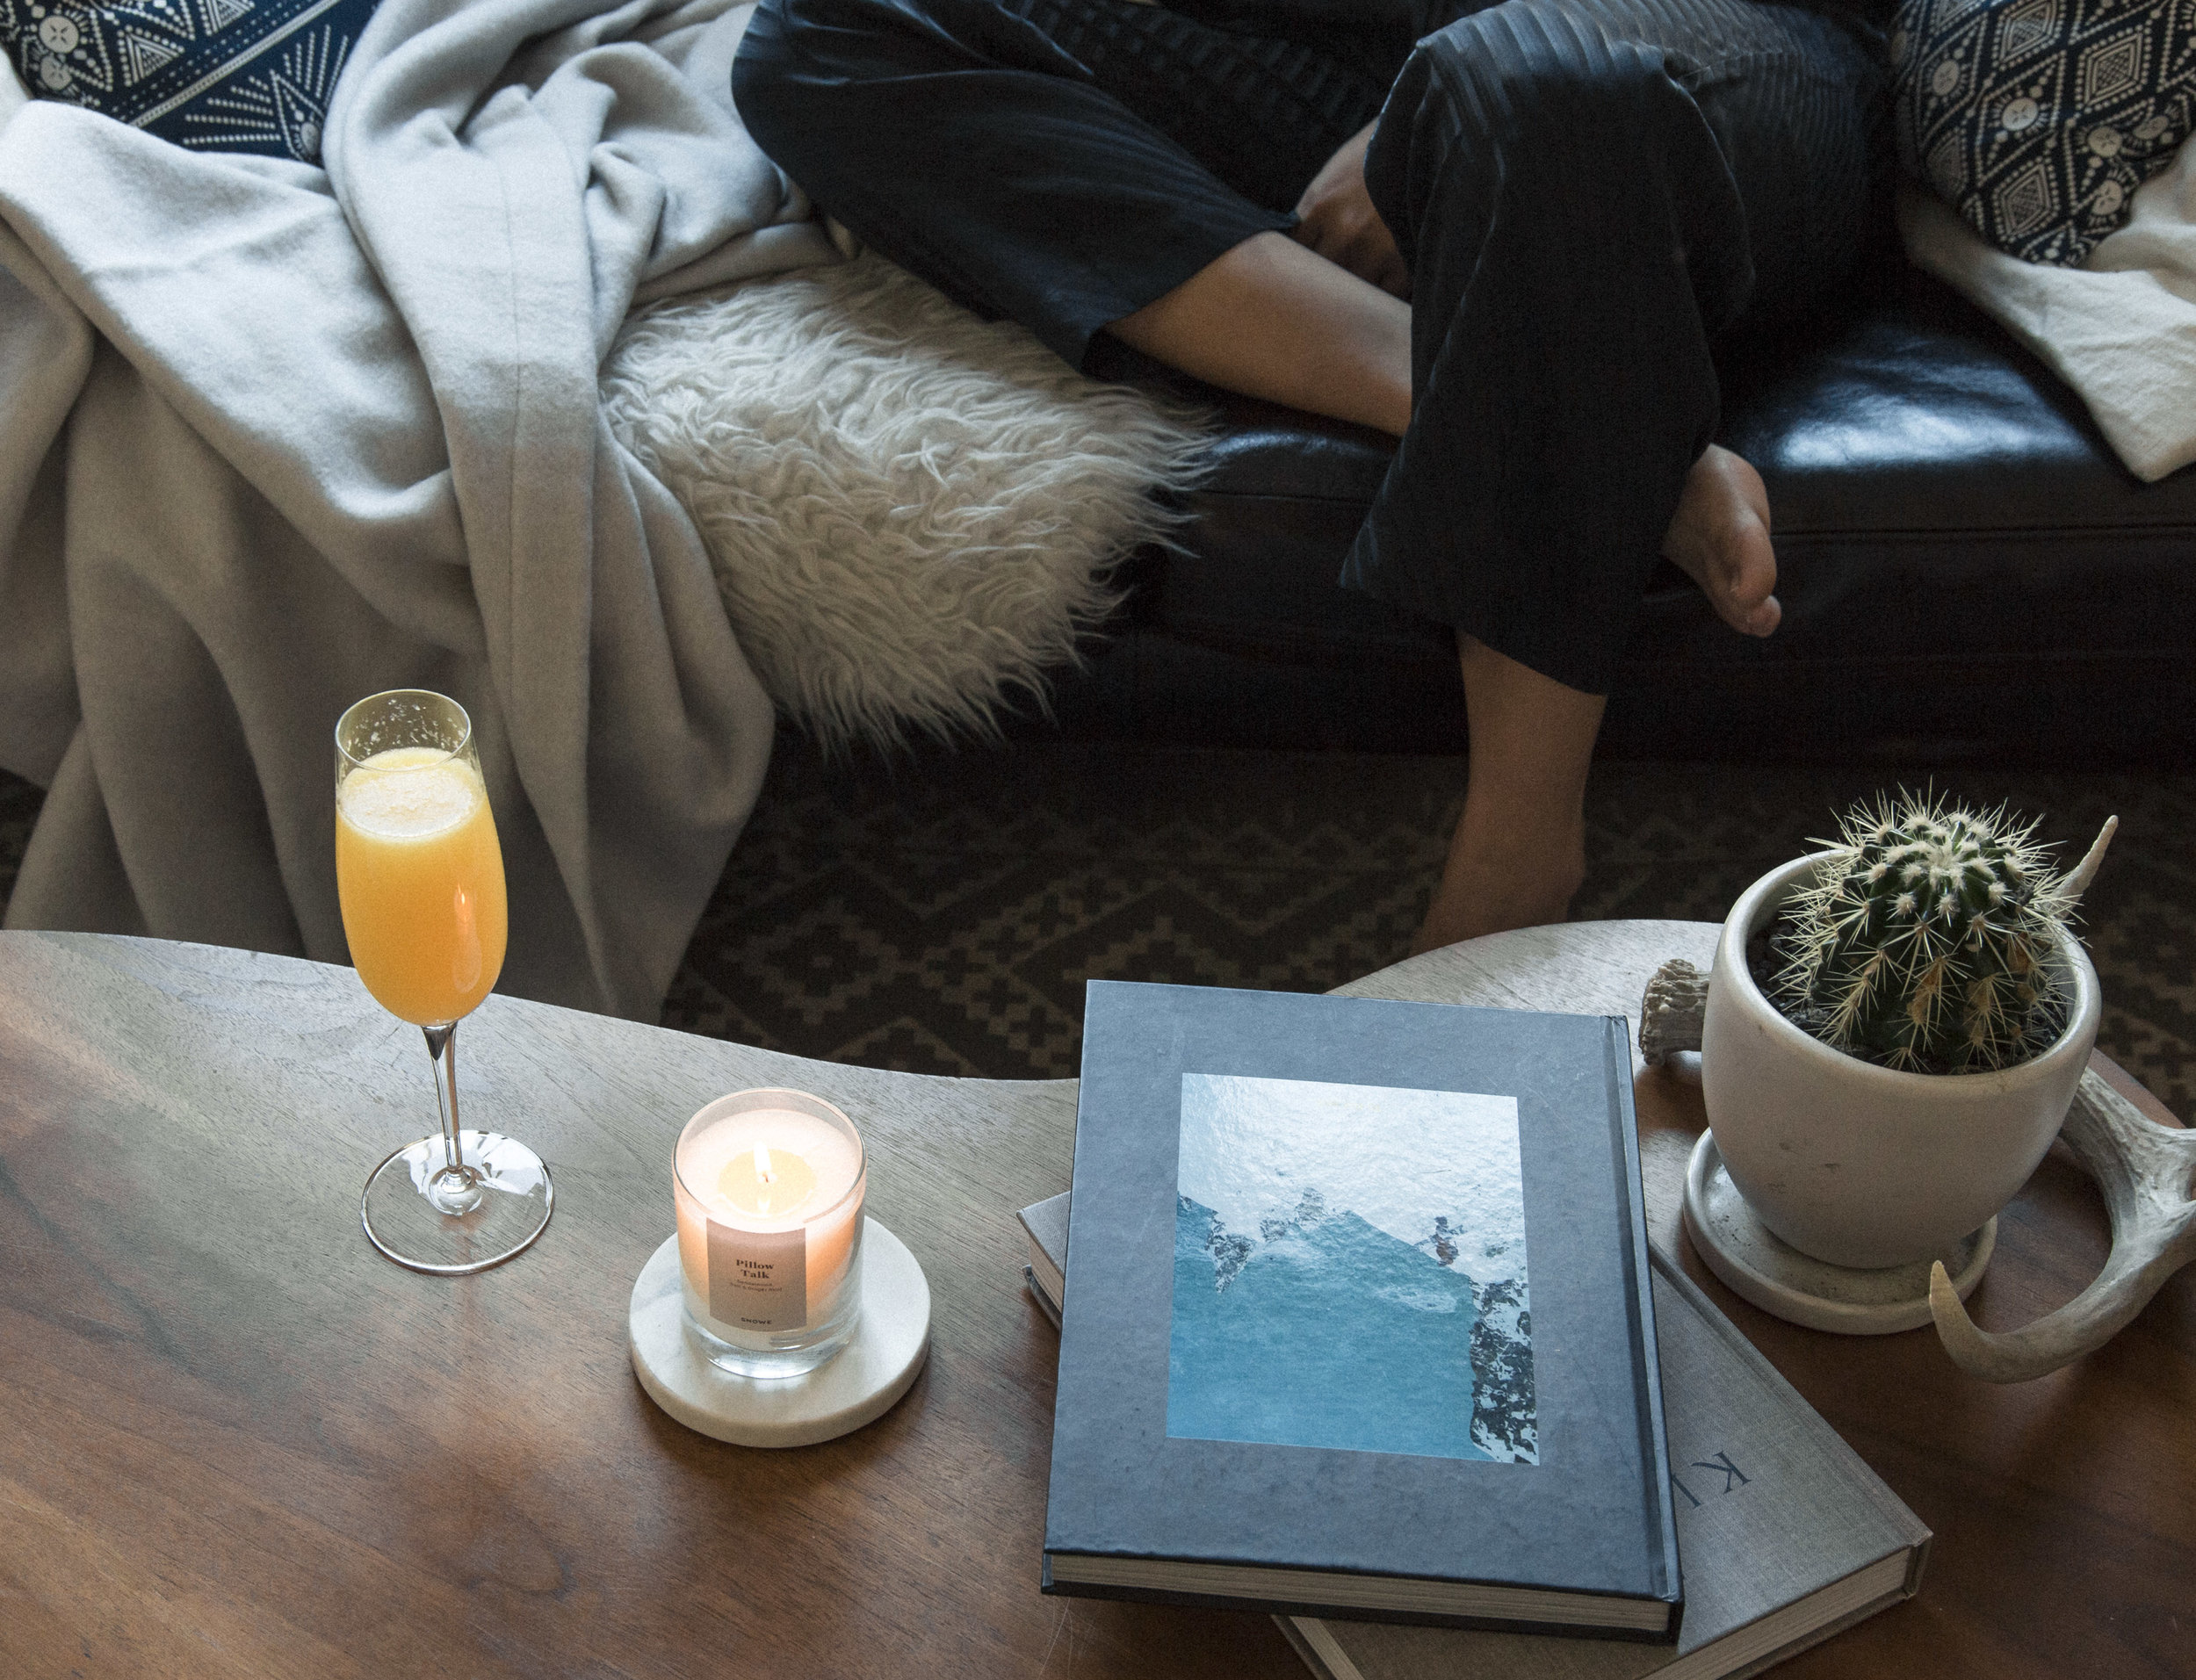 caitlin_miyako_taylor_snowe_champagne_glass_candle_blanket